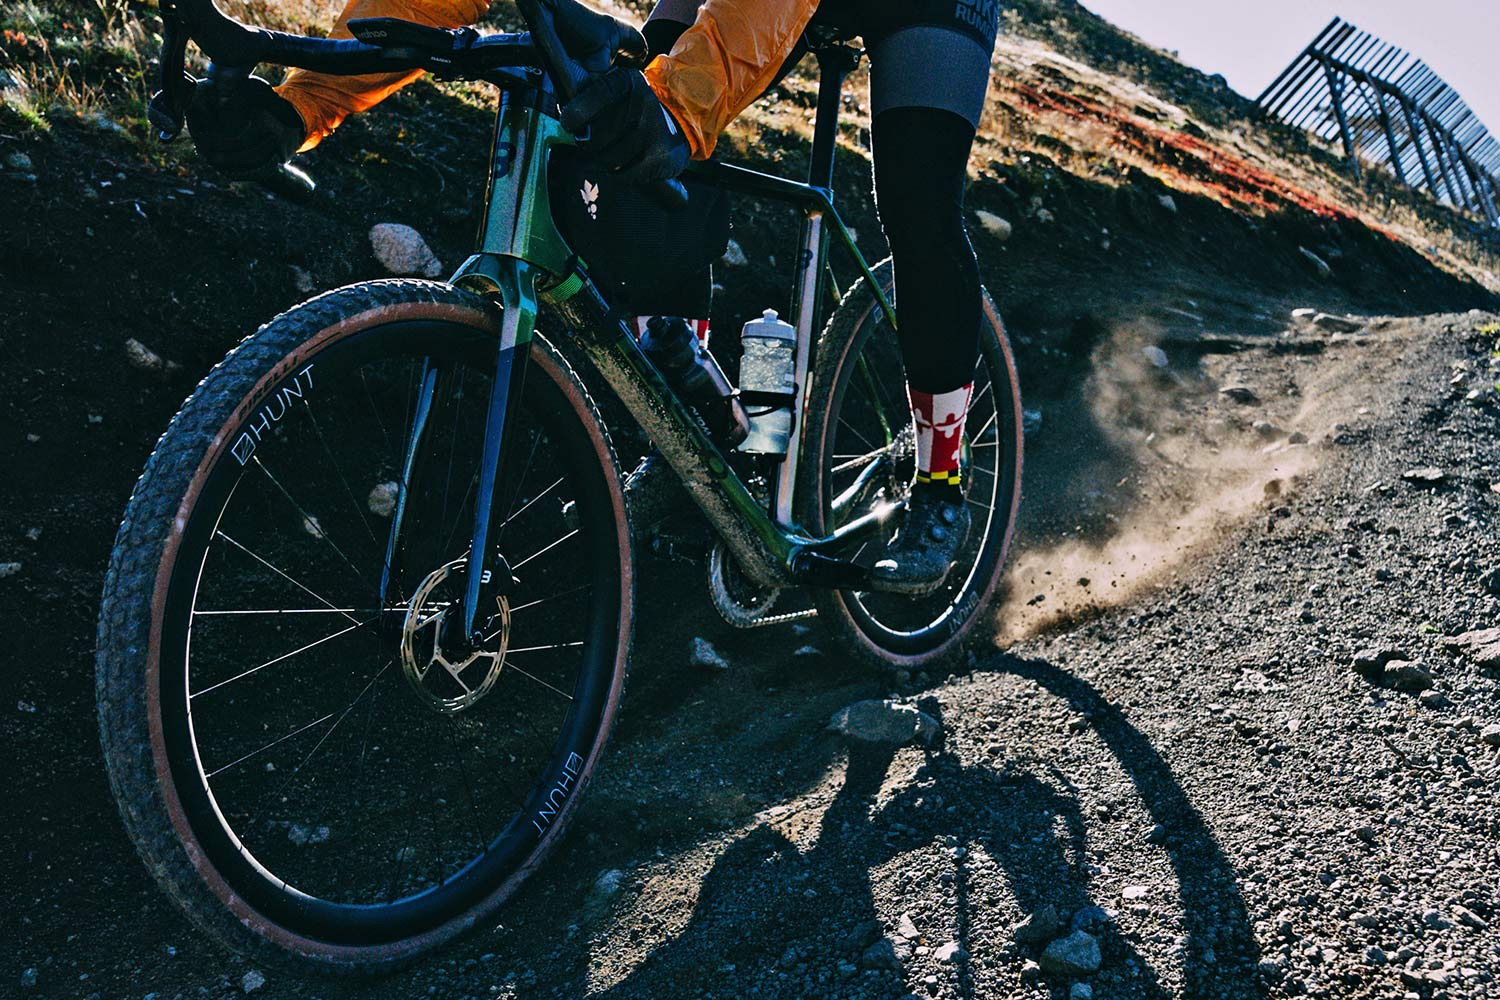 2022 Basso Palta II carbon gravel bike review made-in-Italy, photo by Francesco Bonato,fast & loose